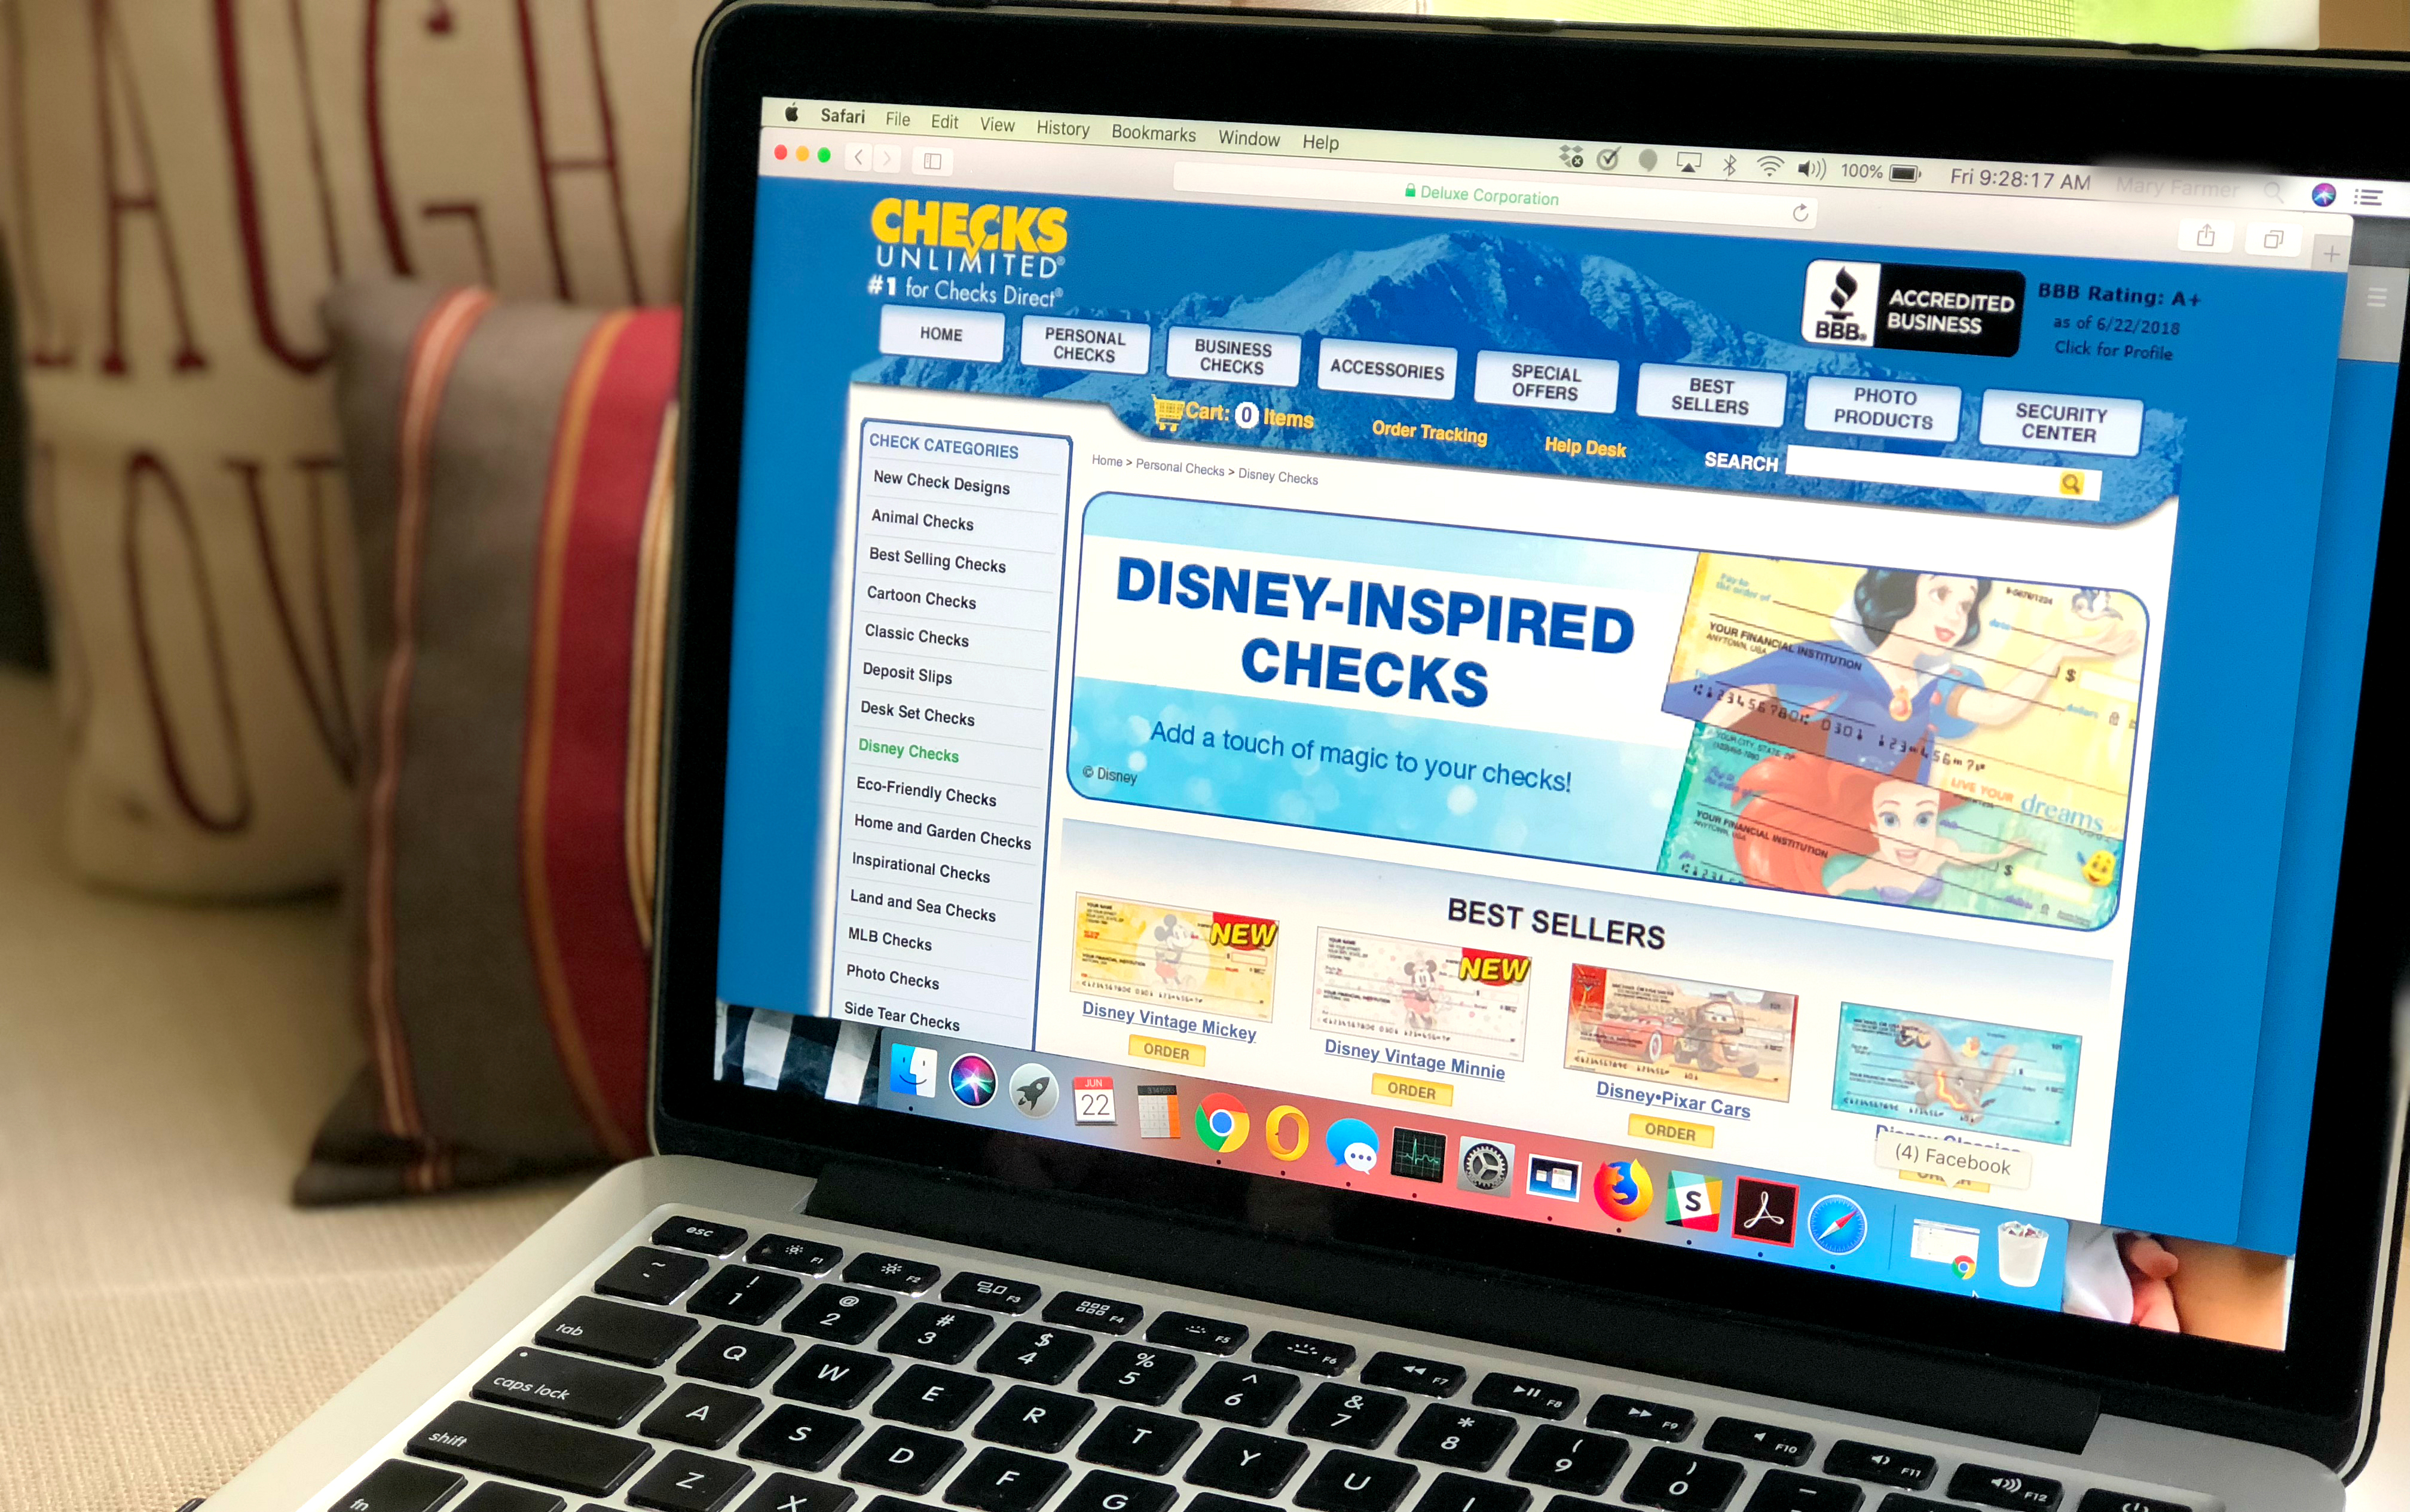 Get custom Disney personalized checks from Checks Unlimited shipped for less than $5 per box!